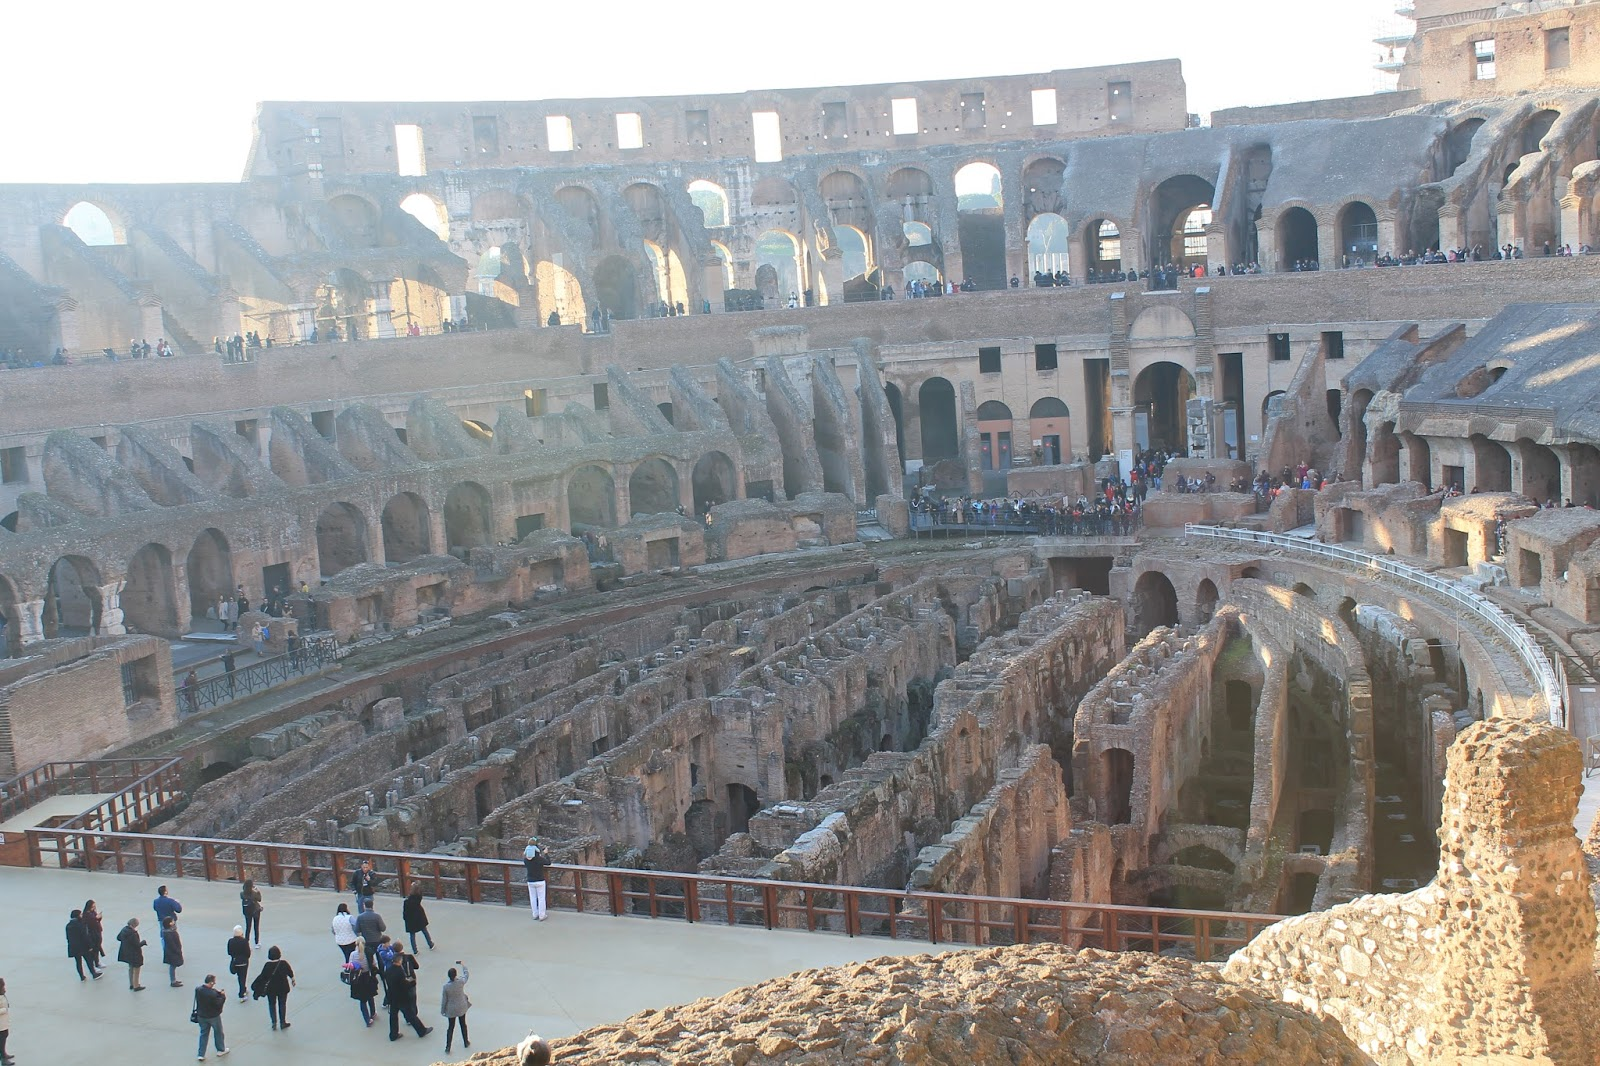 rome was not built in a day essay The adages 'rome was not built in a day' and 'slow and steady wins the race'  point to an essential attribute of achievement or success, that it.